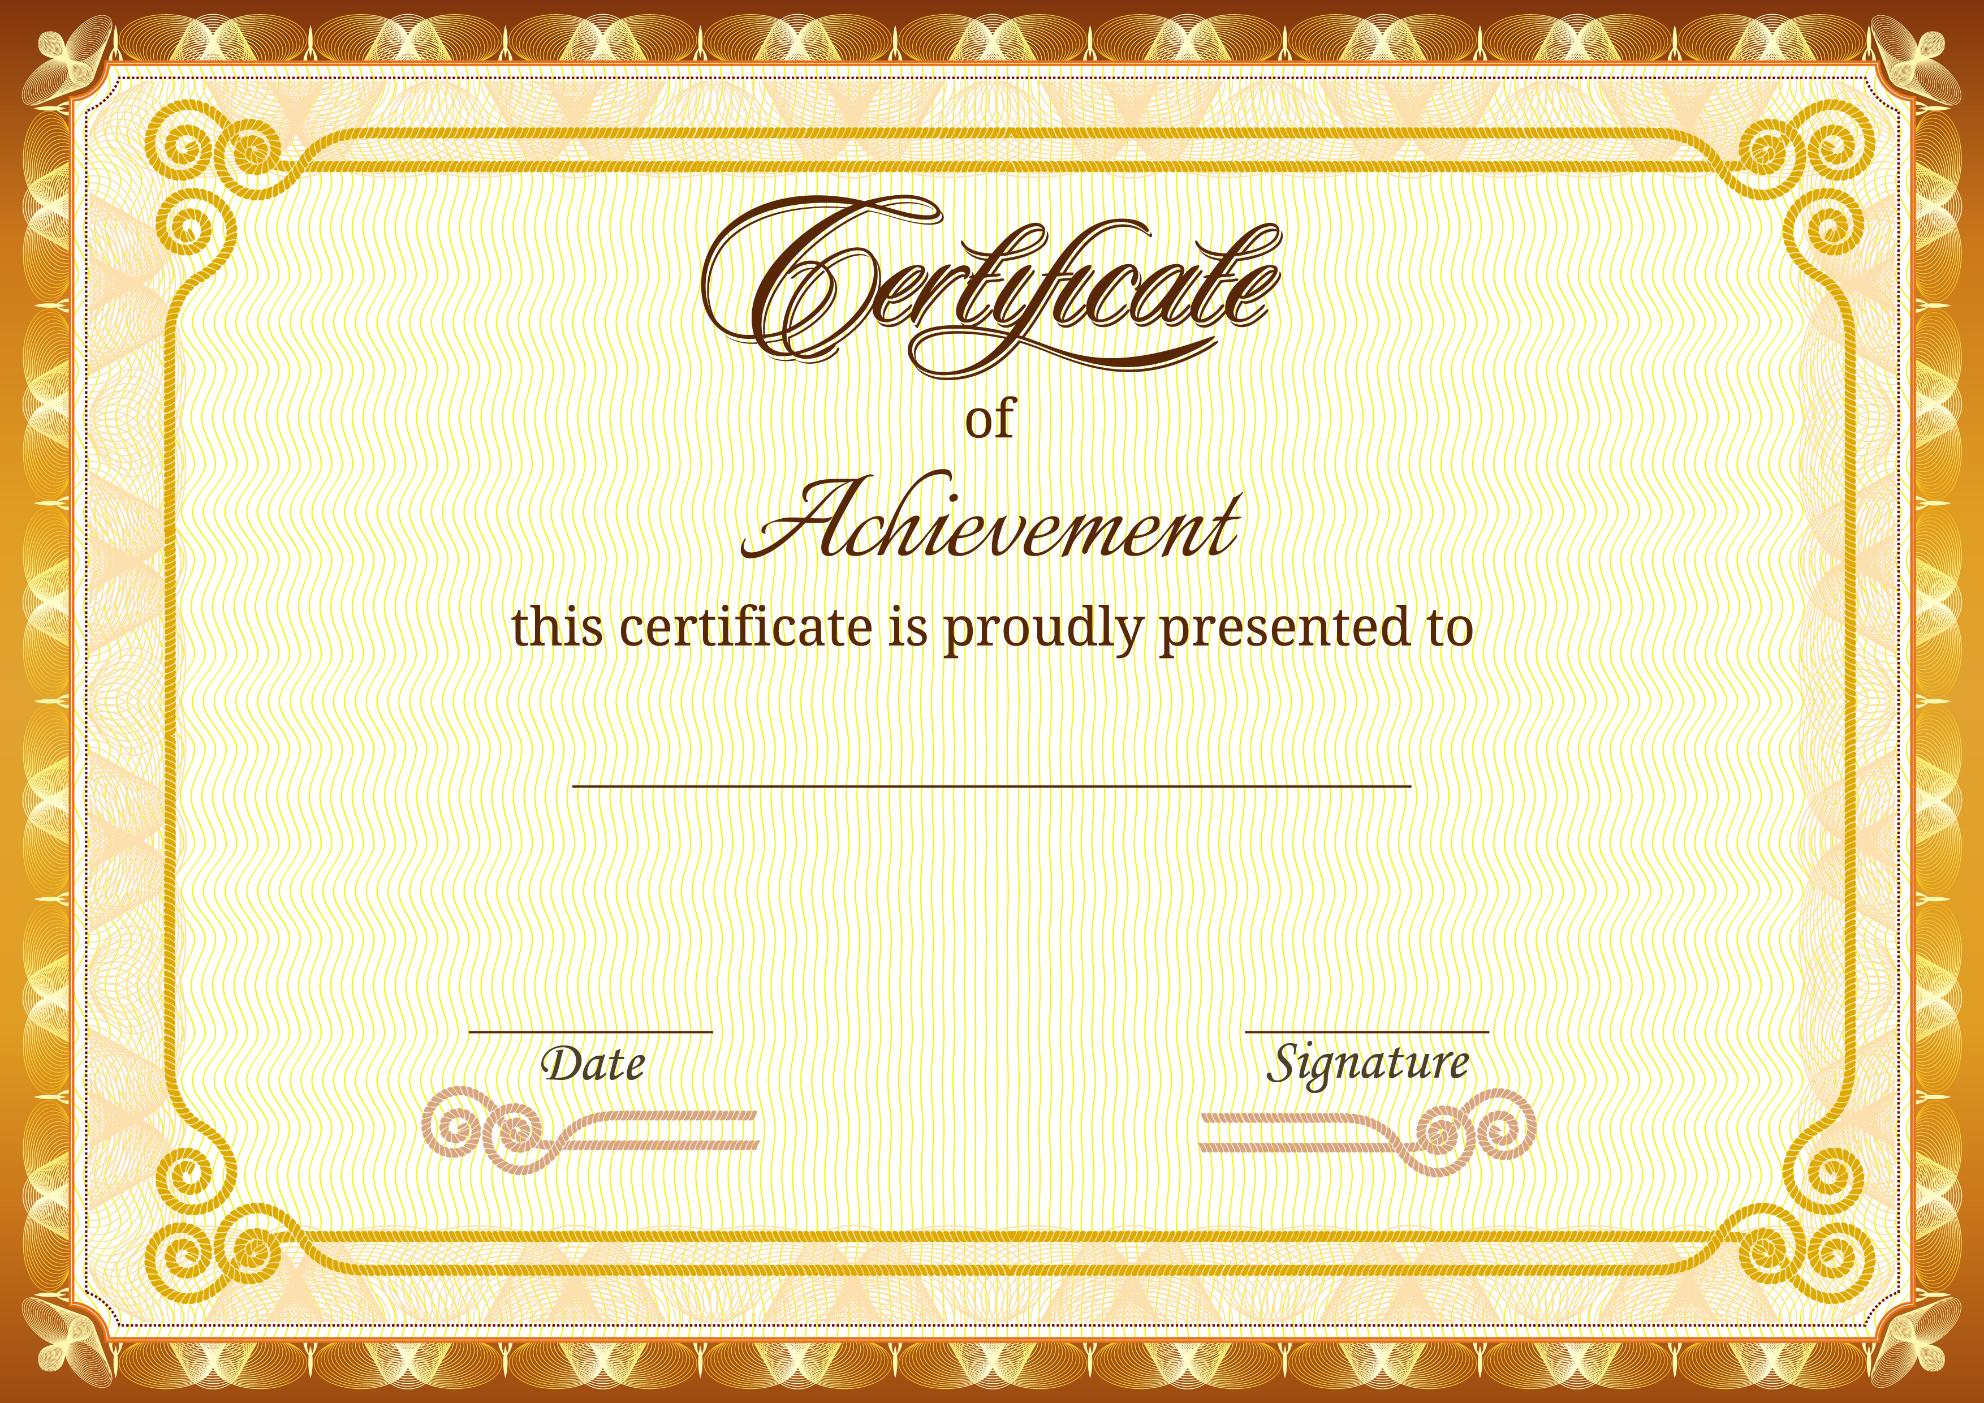 certificates as awards, certificate printing. online printing